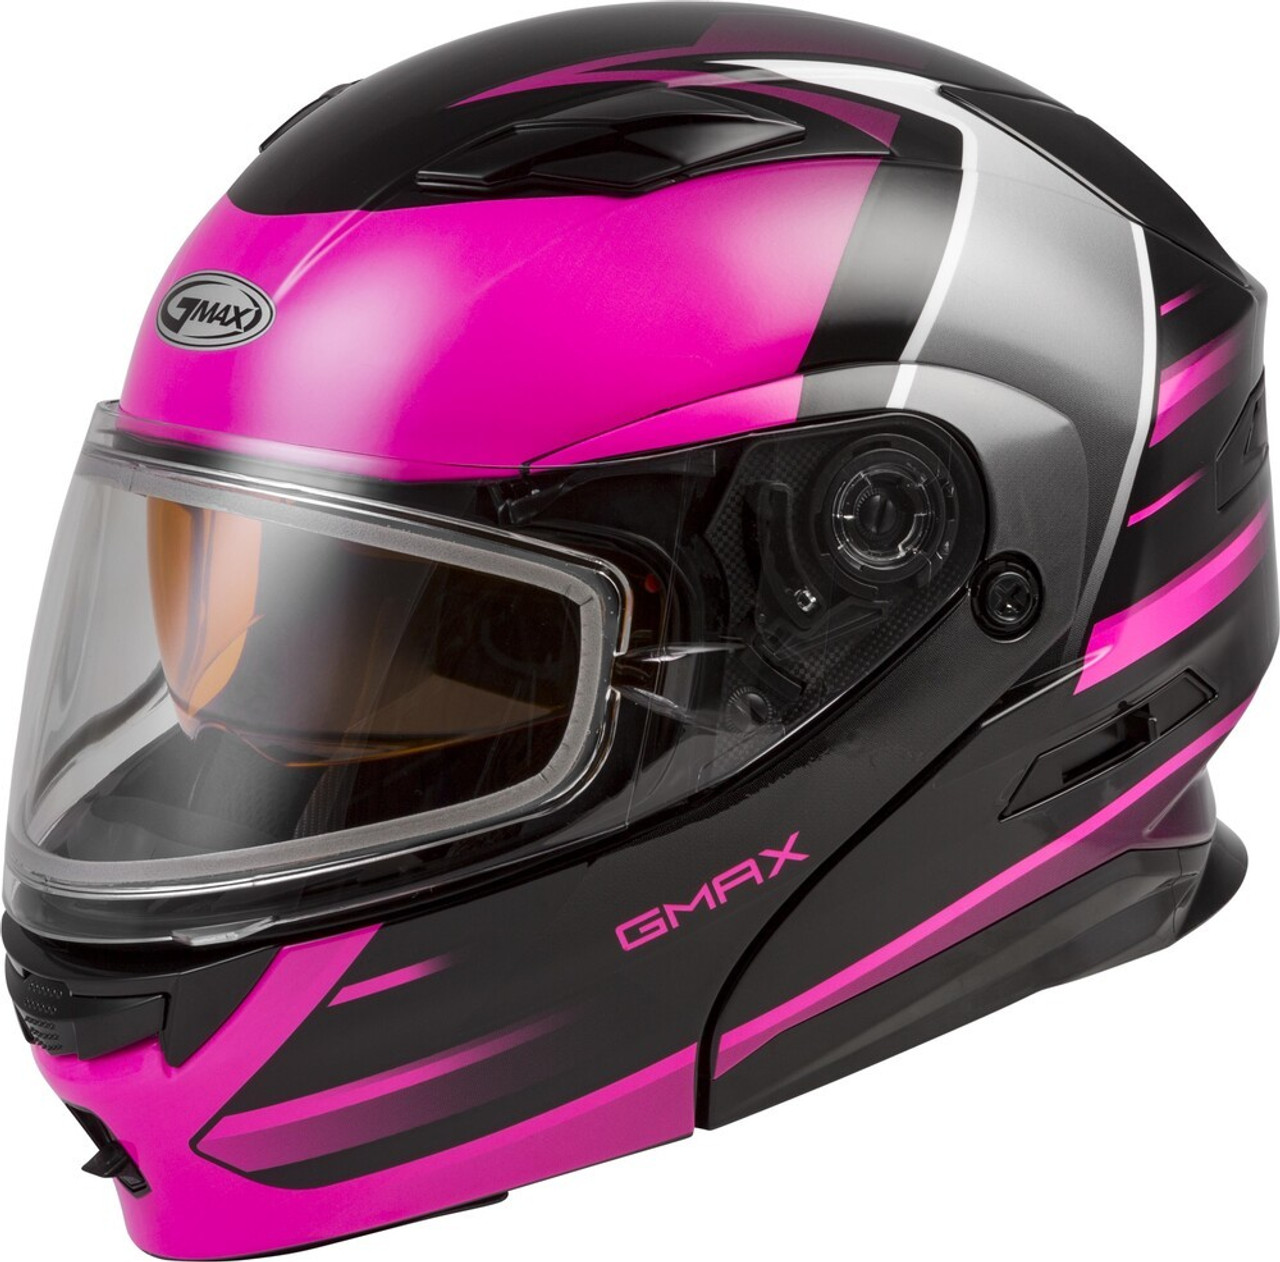 GMAX MD-01S Modular Snow Helmet Descendant Black/Pink/White